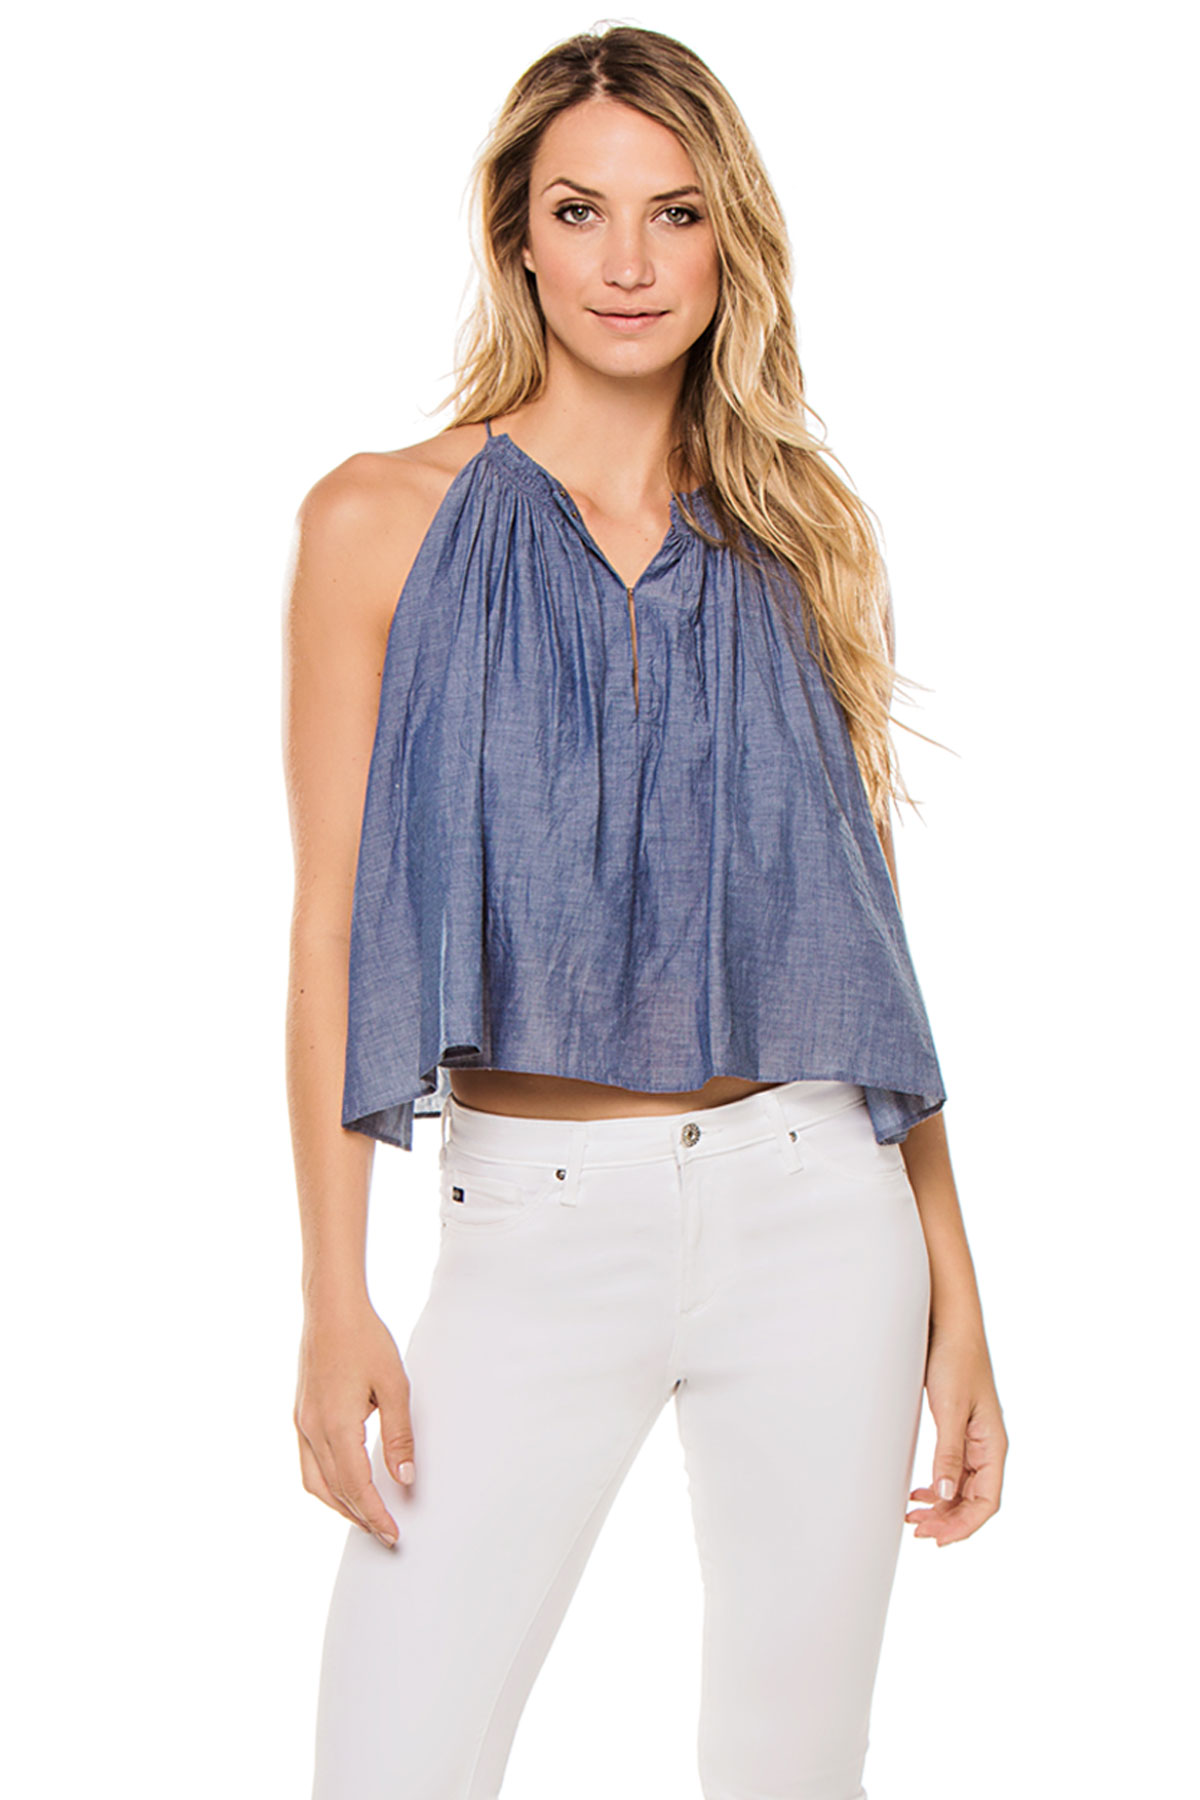 Cutaway Button Up Tank Top - Chambray